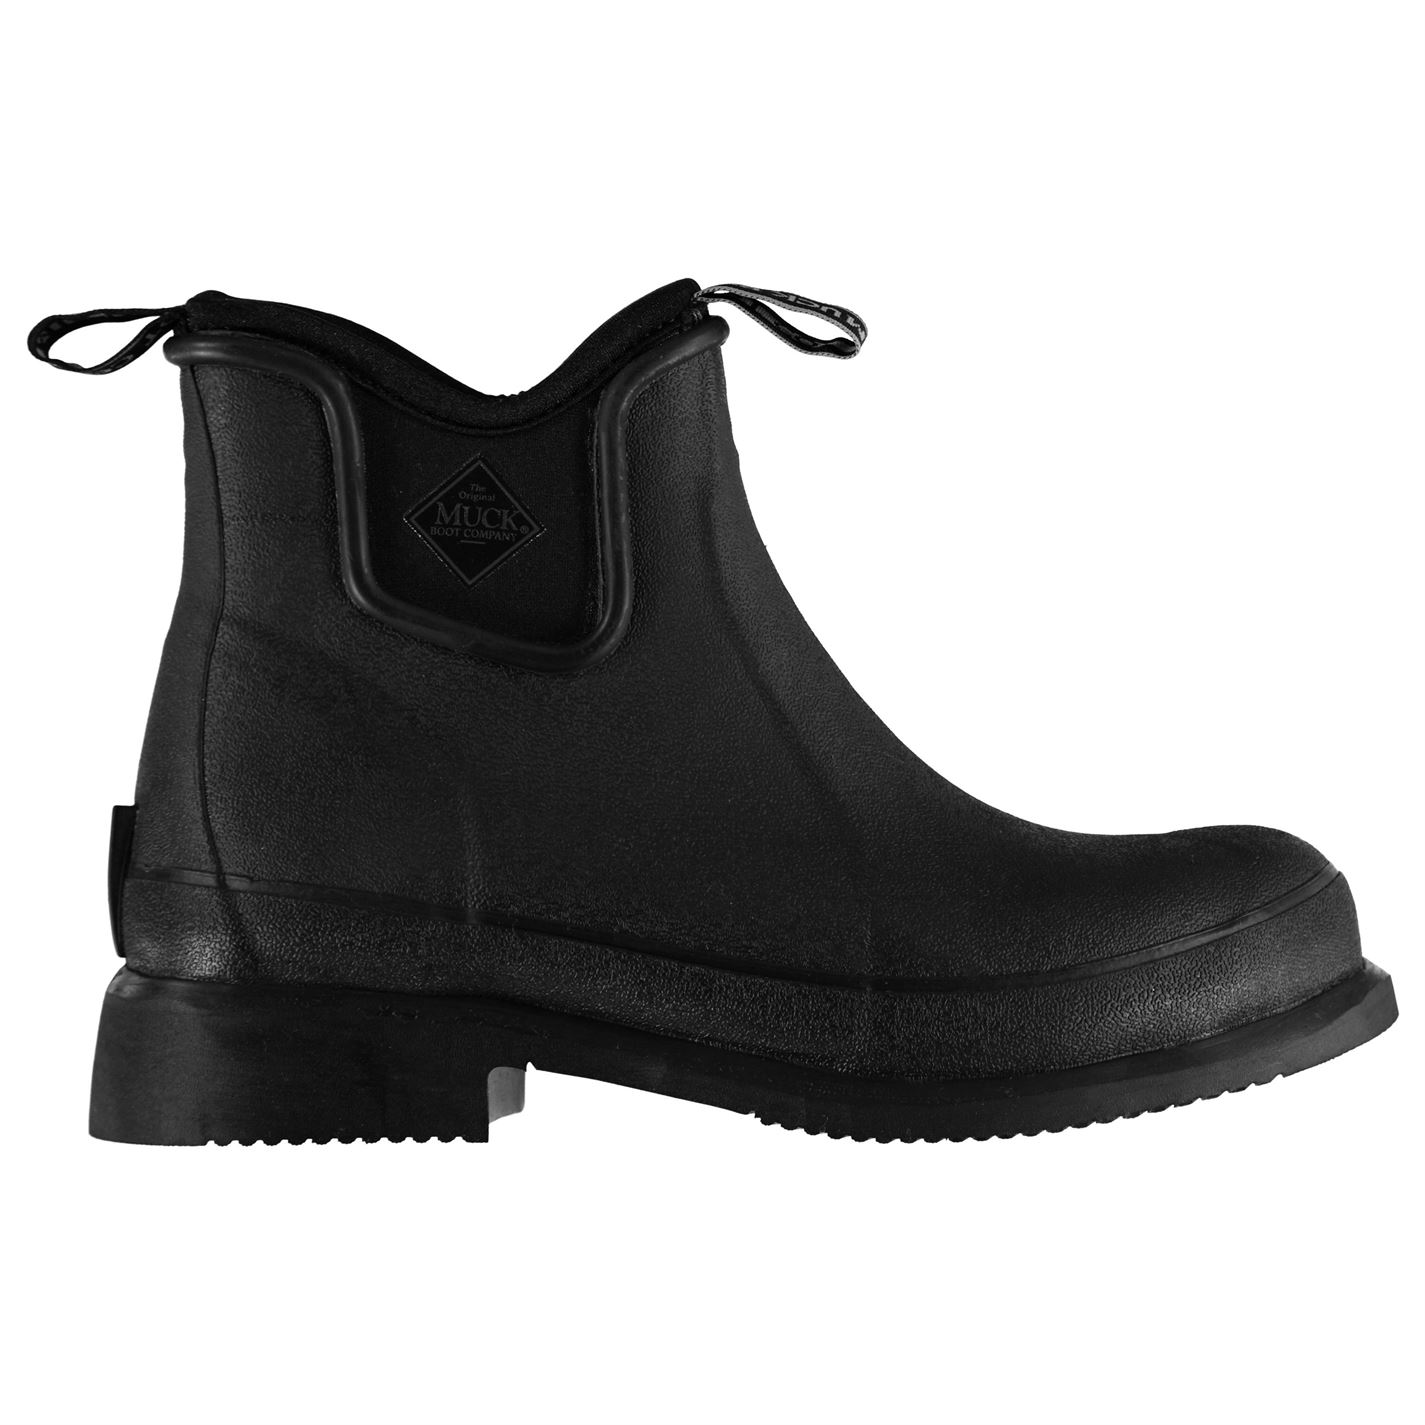 62bb47b73aa Boty Muck Boot Unisex Wear Ankle Boots - Glami.cz